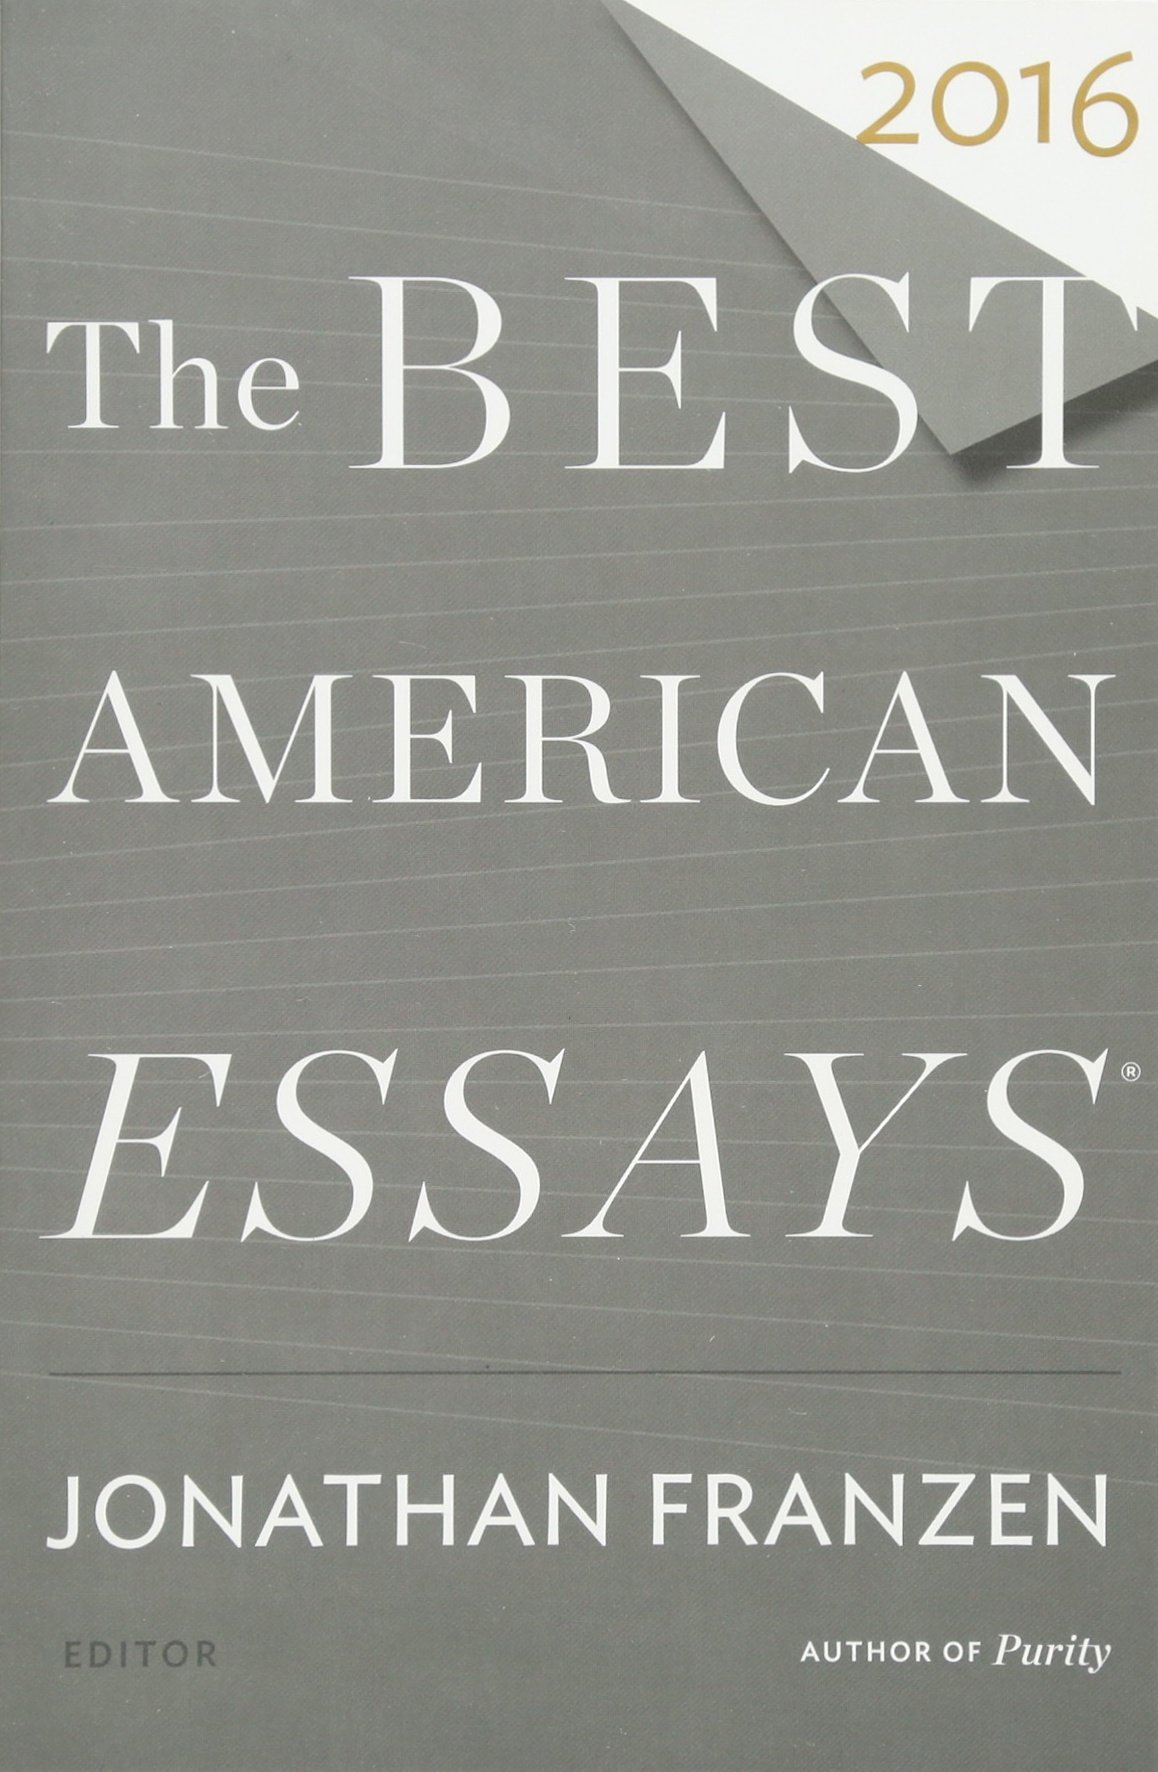 001 71a6bhsgsdl Essay Example Best American Essays Unique 2016 Pdf Download The Sparknotes Full